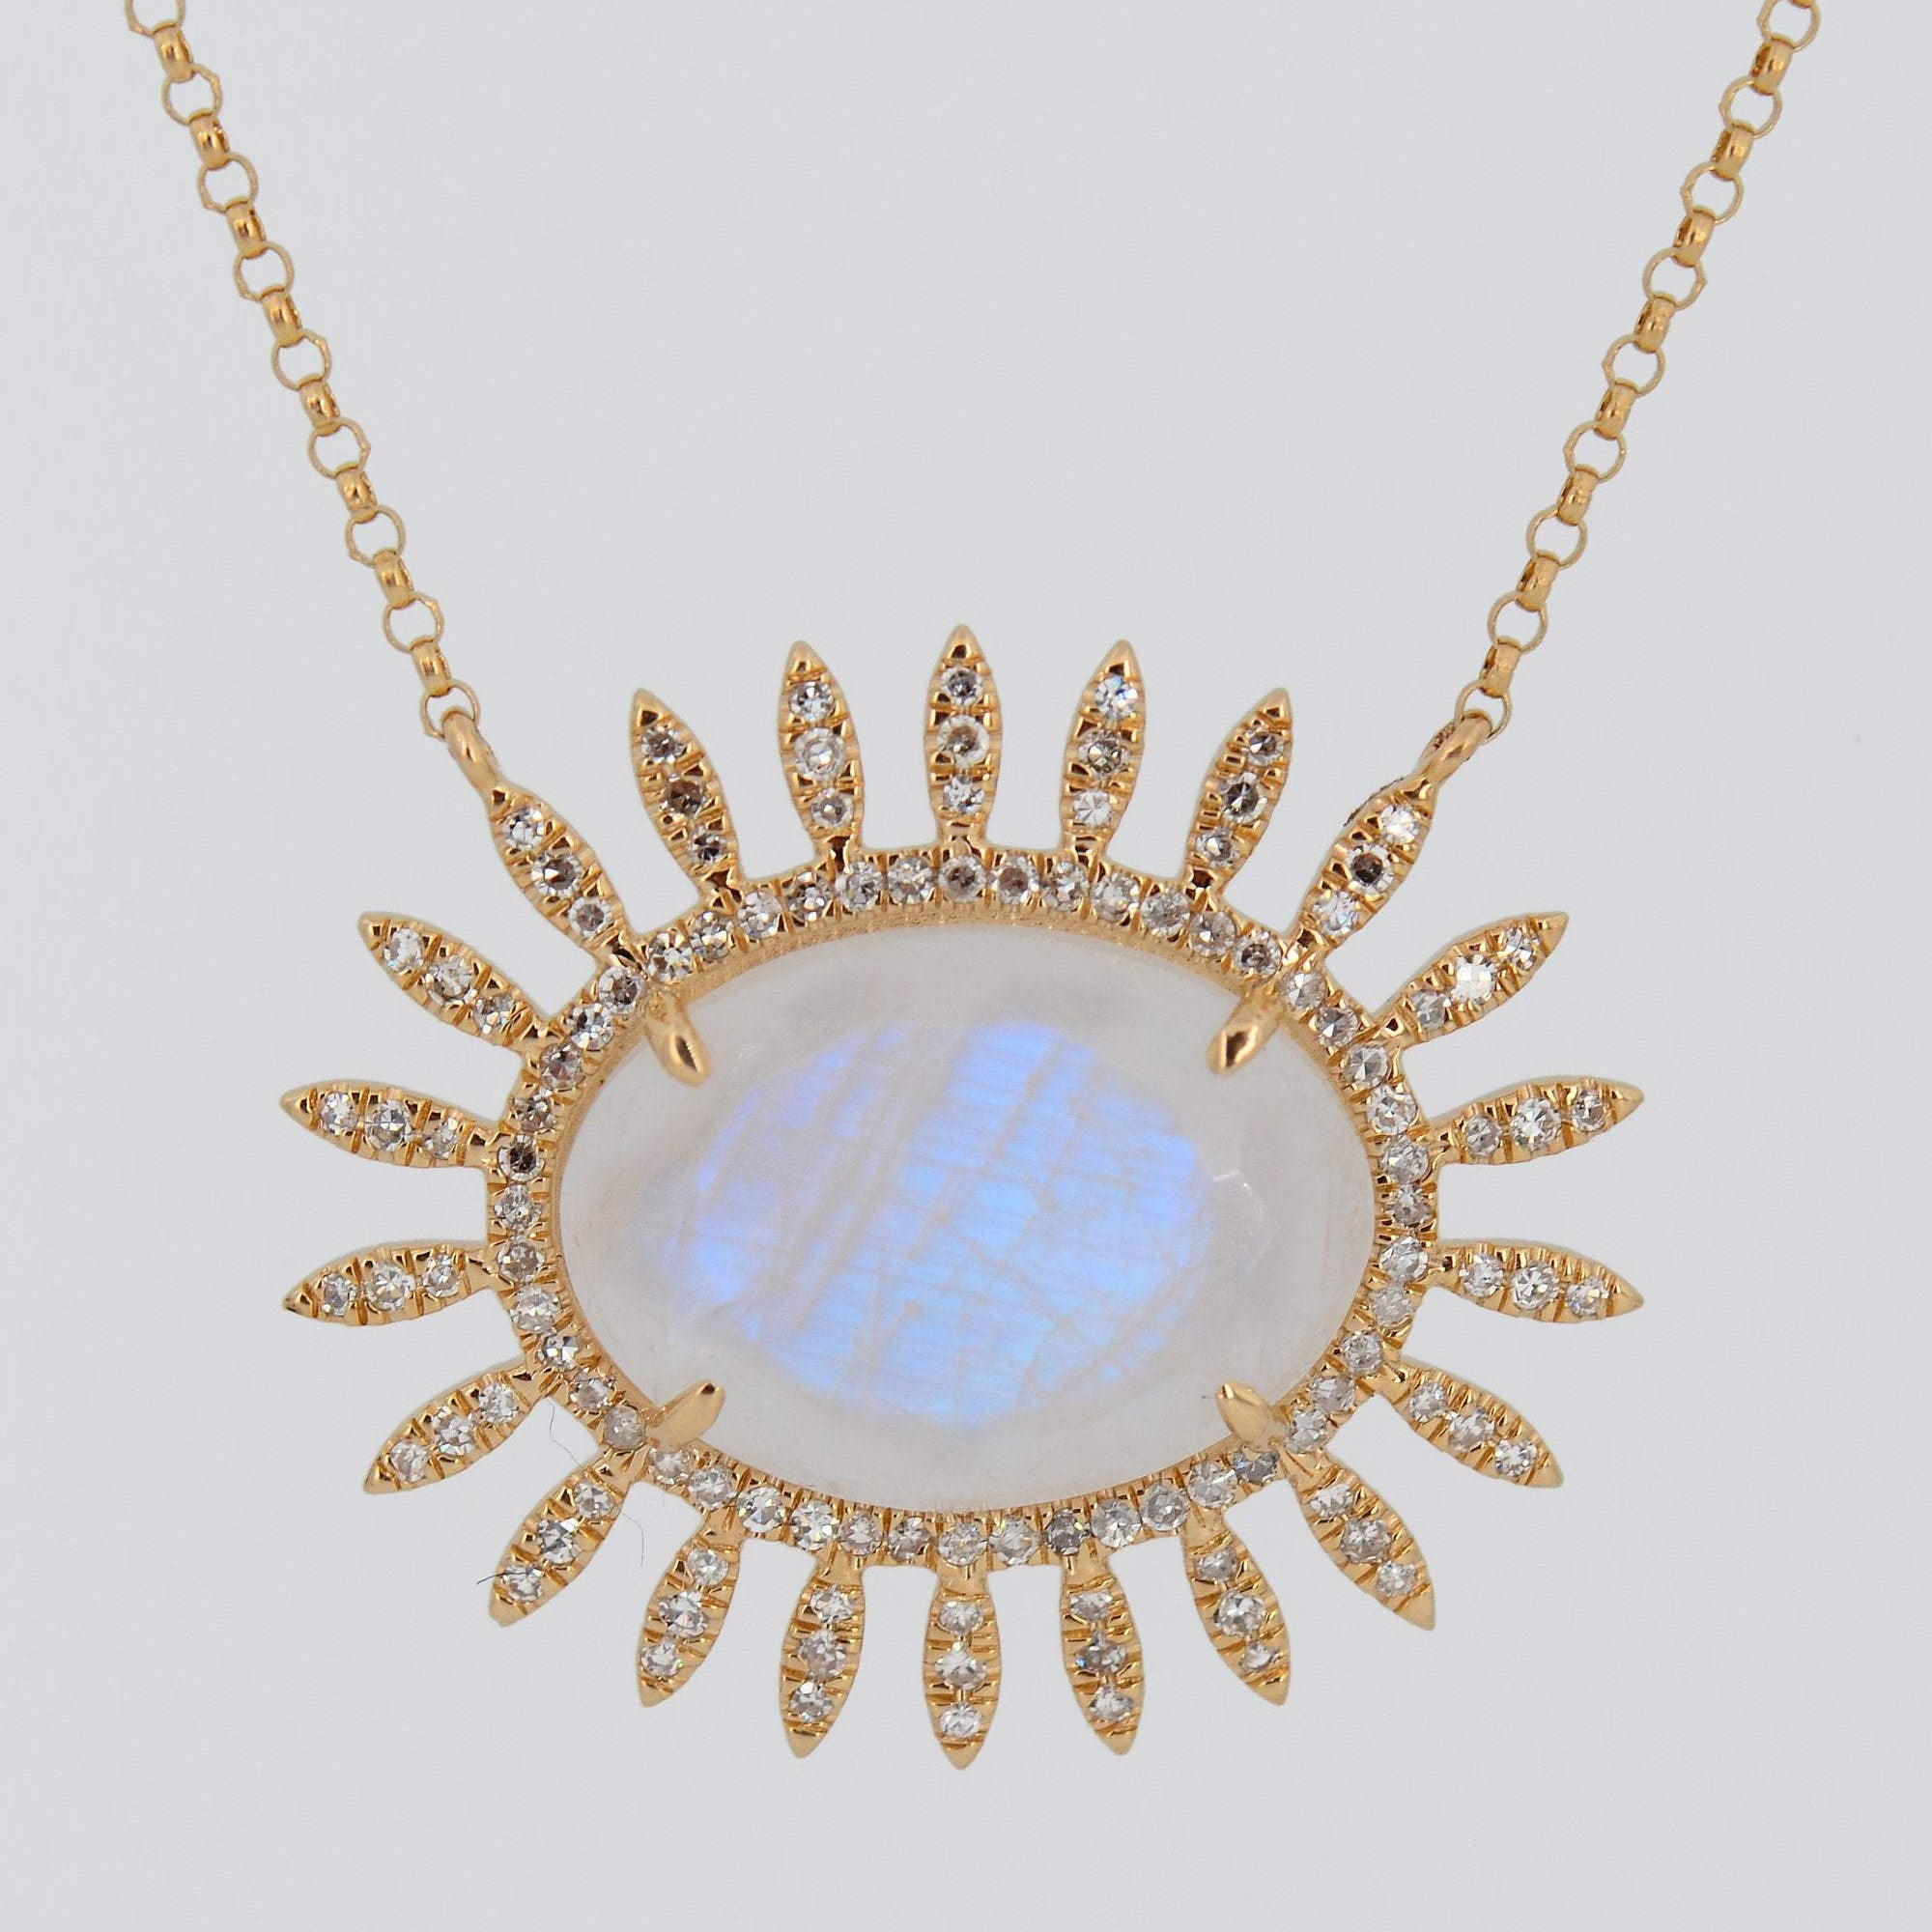 Moonstone Diamond Necklace, Statement Necklace